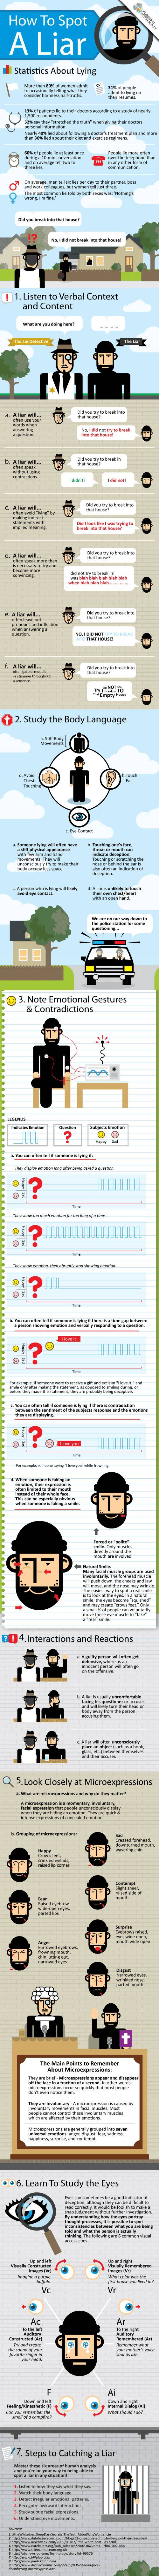 Telltale Signs Someone Is Lying [Infographic]